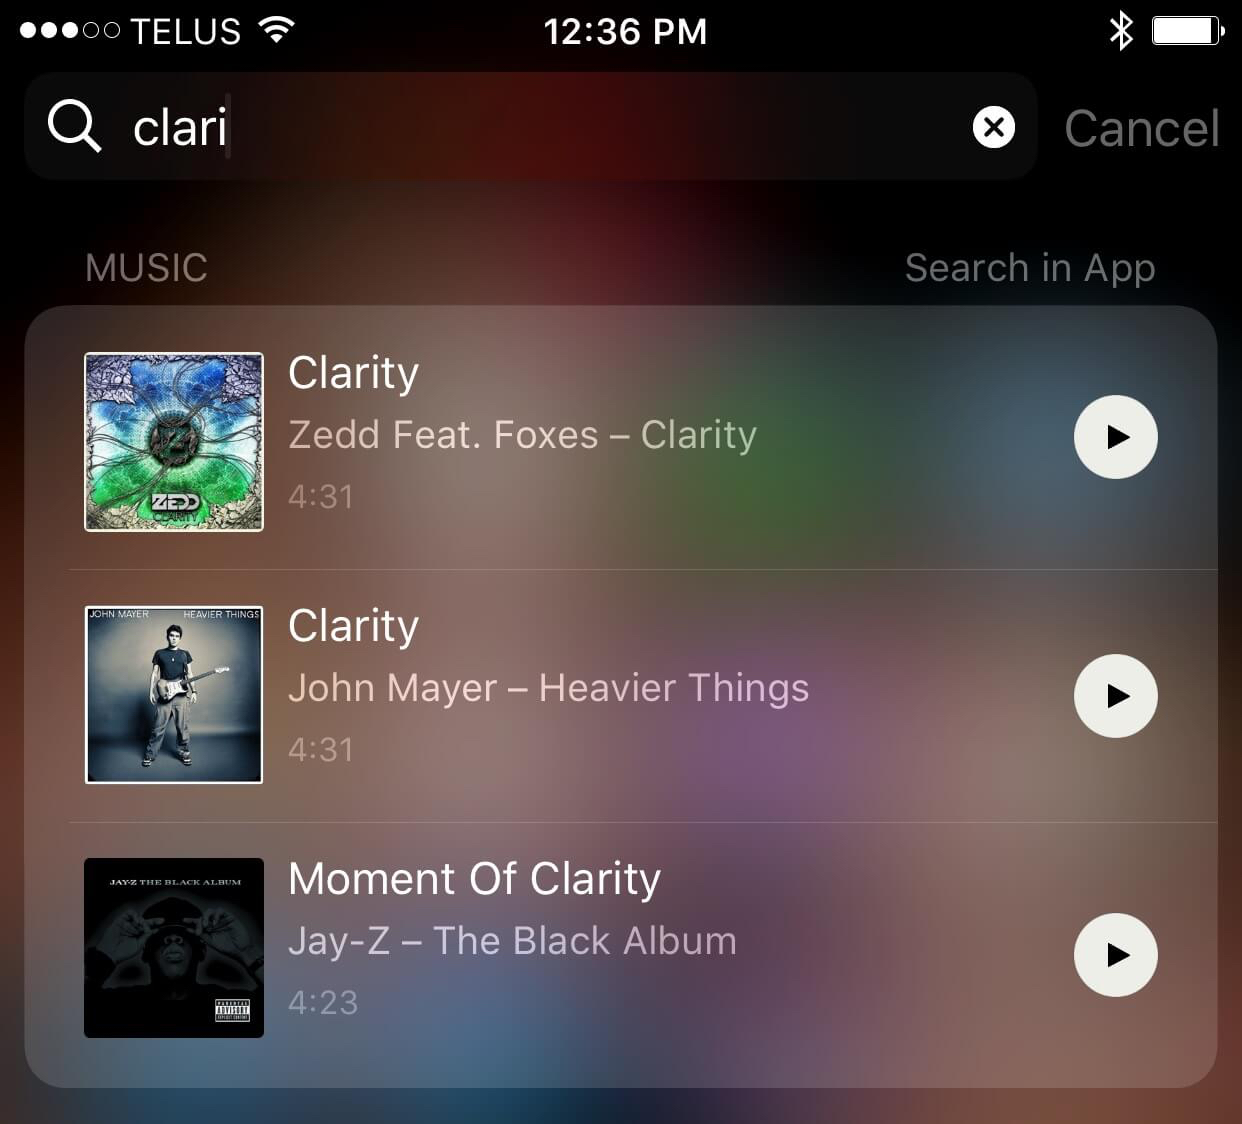 Spotlight searching for a song can be quicker than 3D touching the Music app